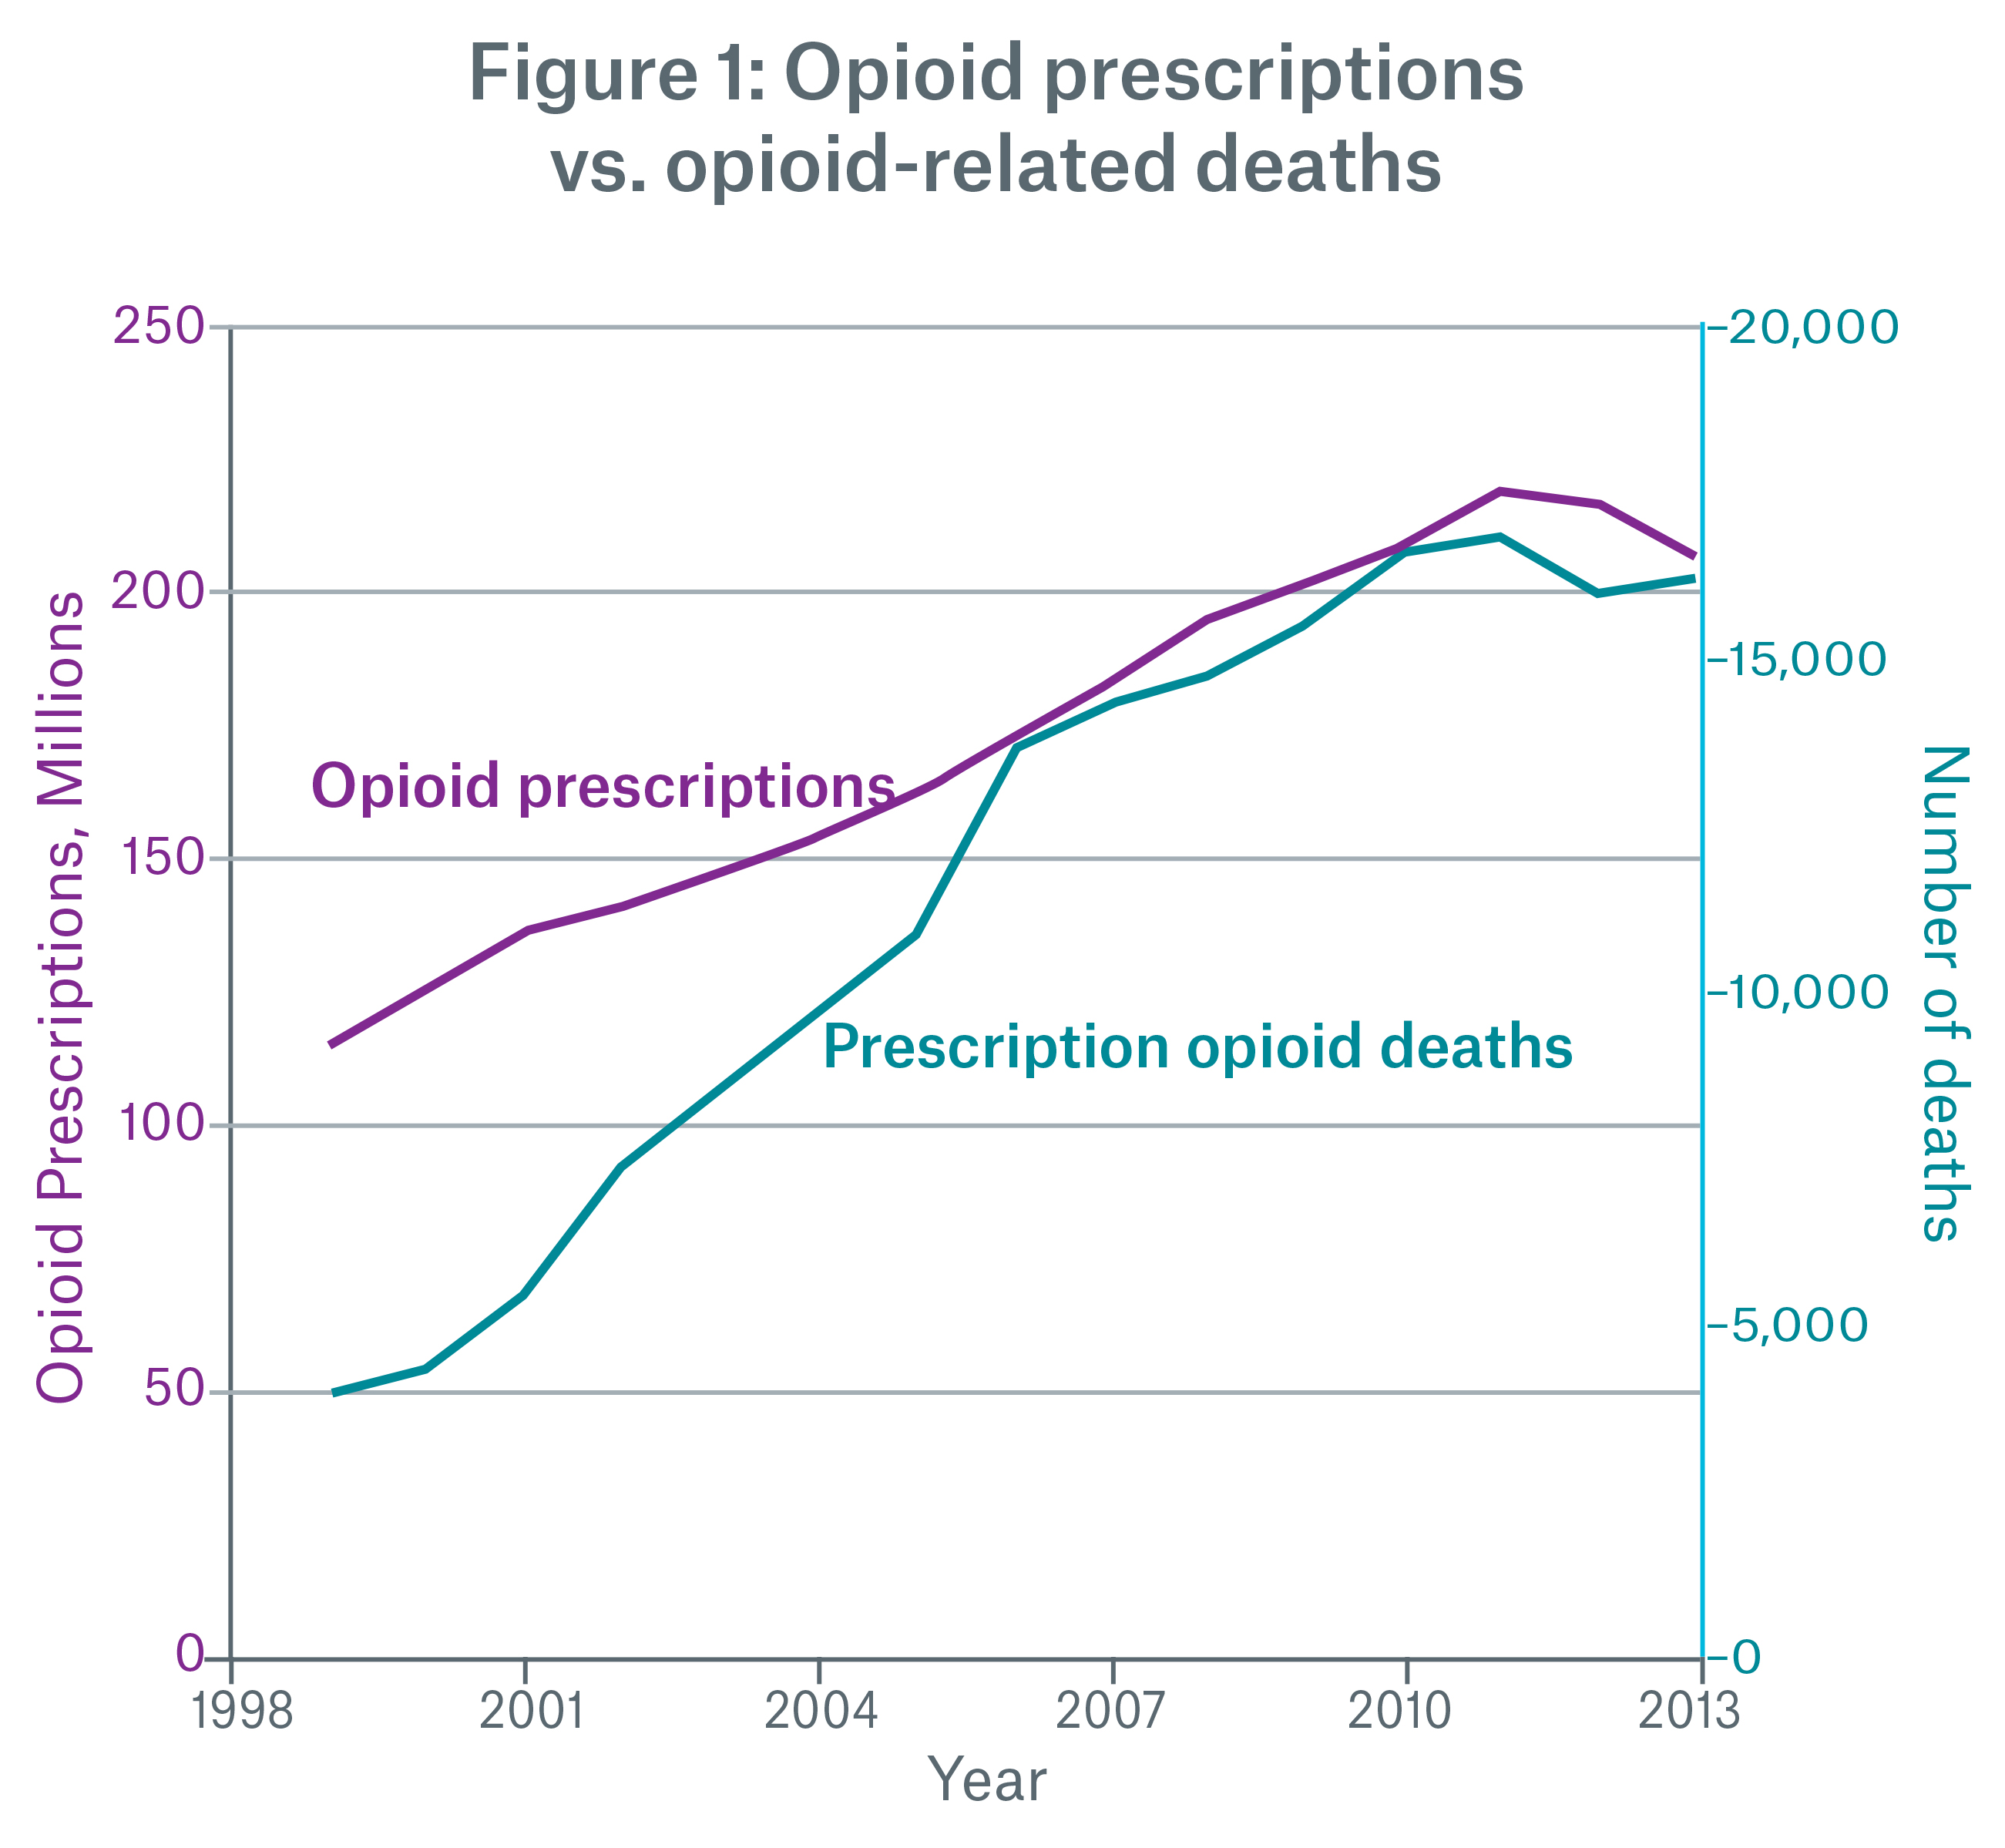 Figure 1: Opioid prescriptions vs. opioid-related deaths